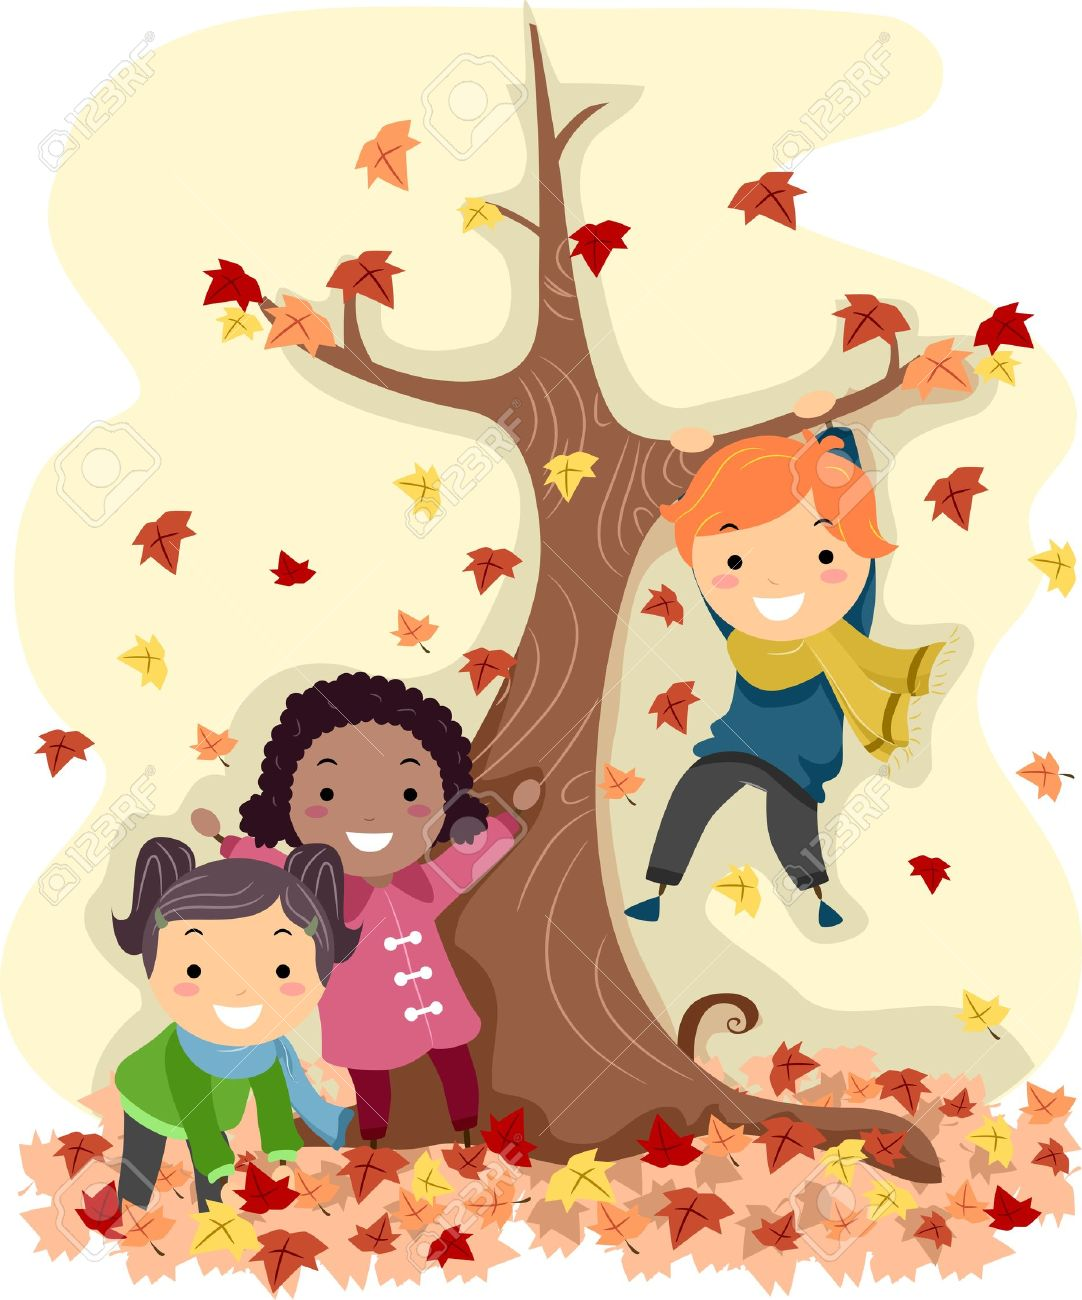 Image result for autumn cartoon